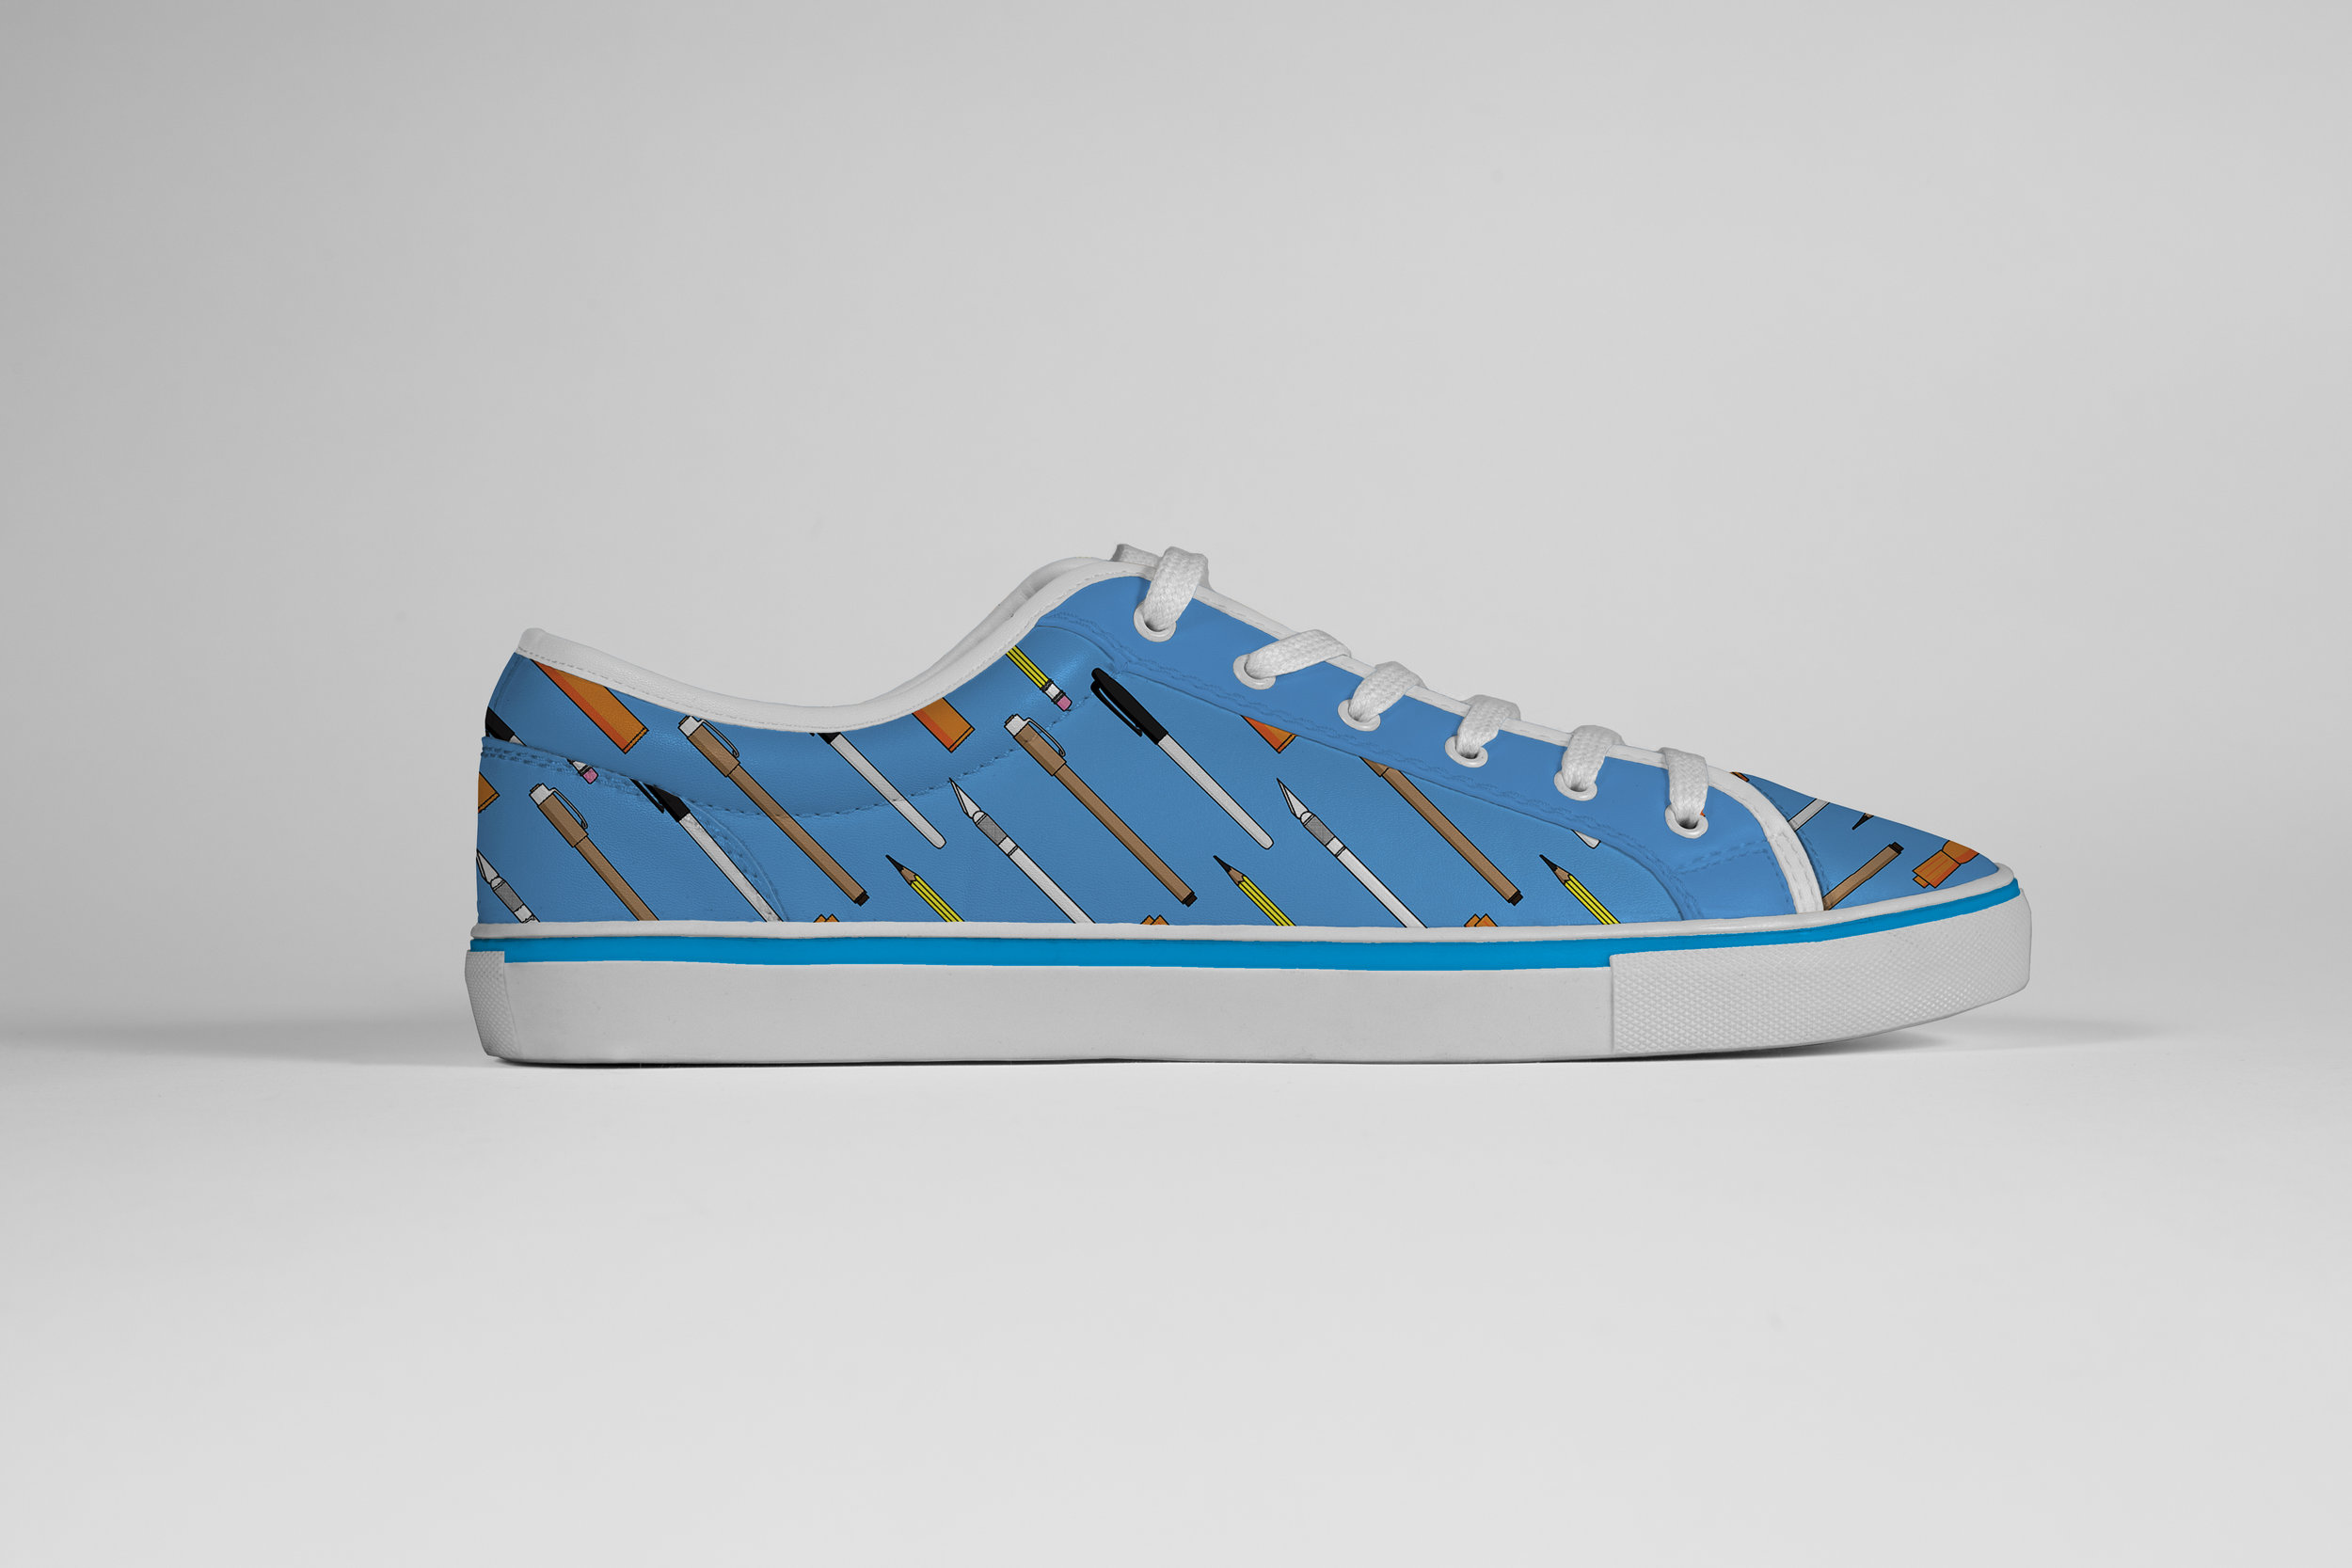 Pens Pattern Vans Shoe Design